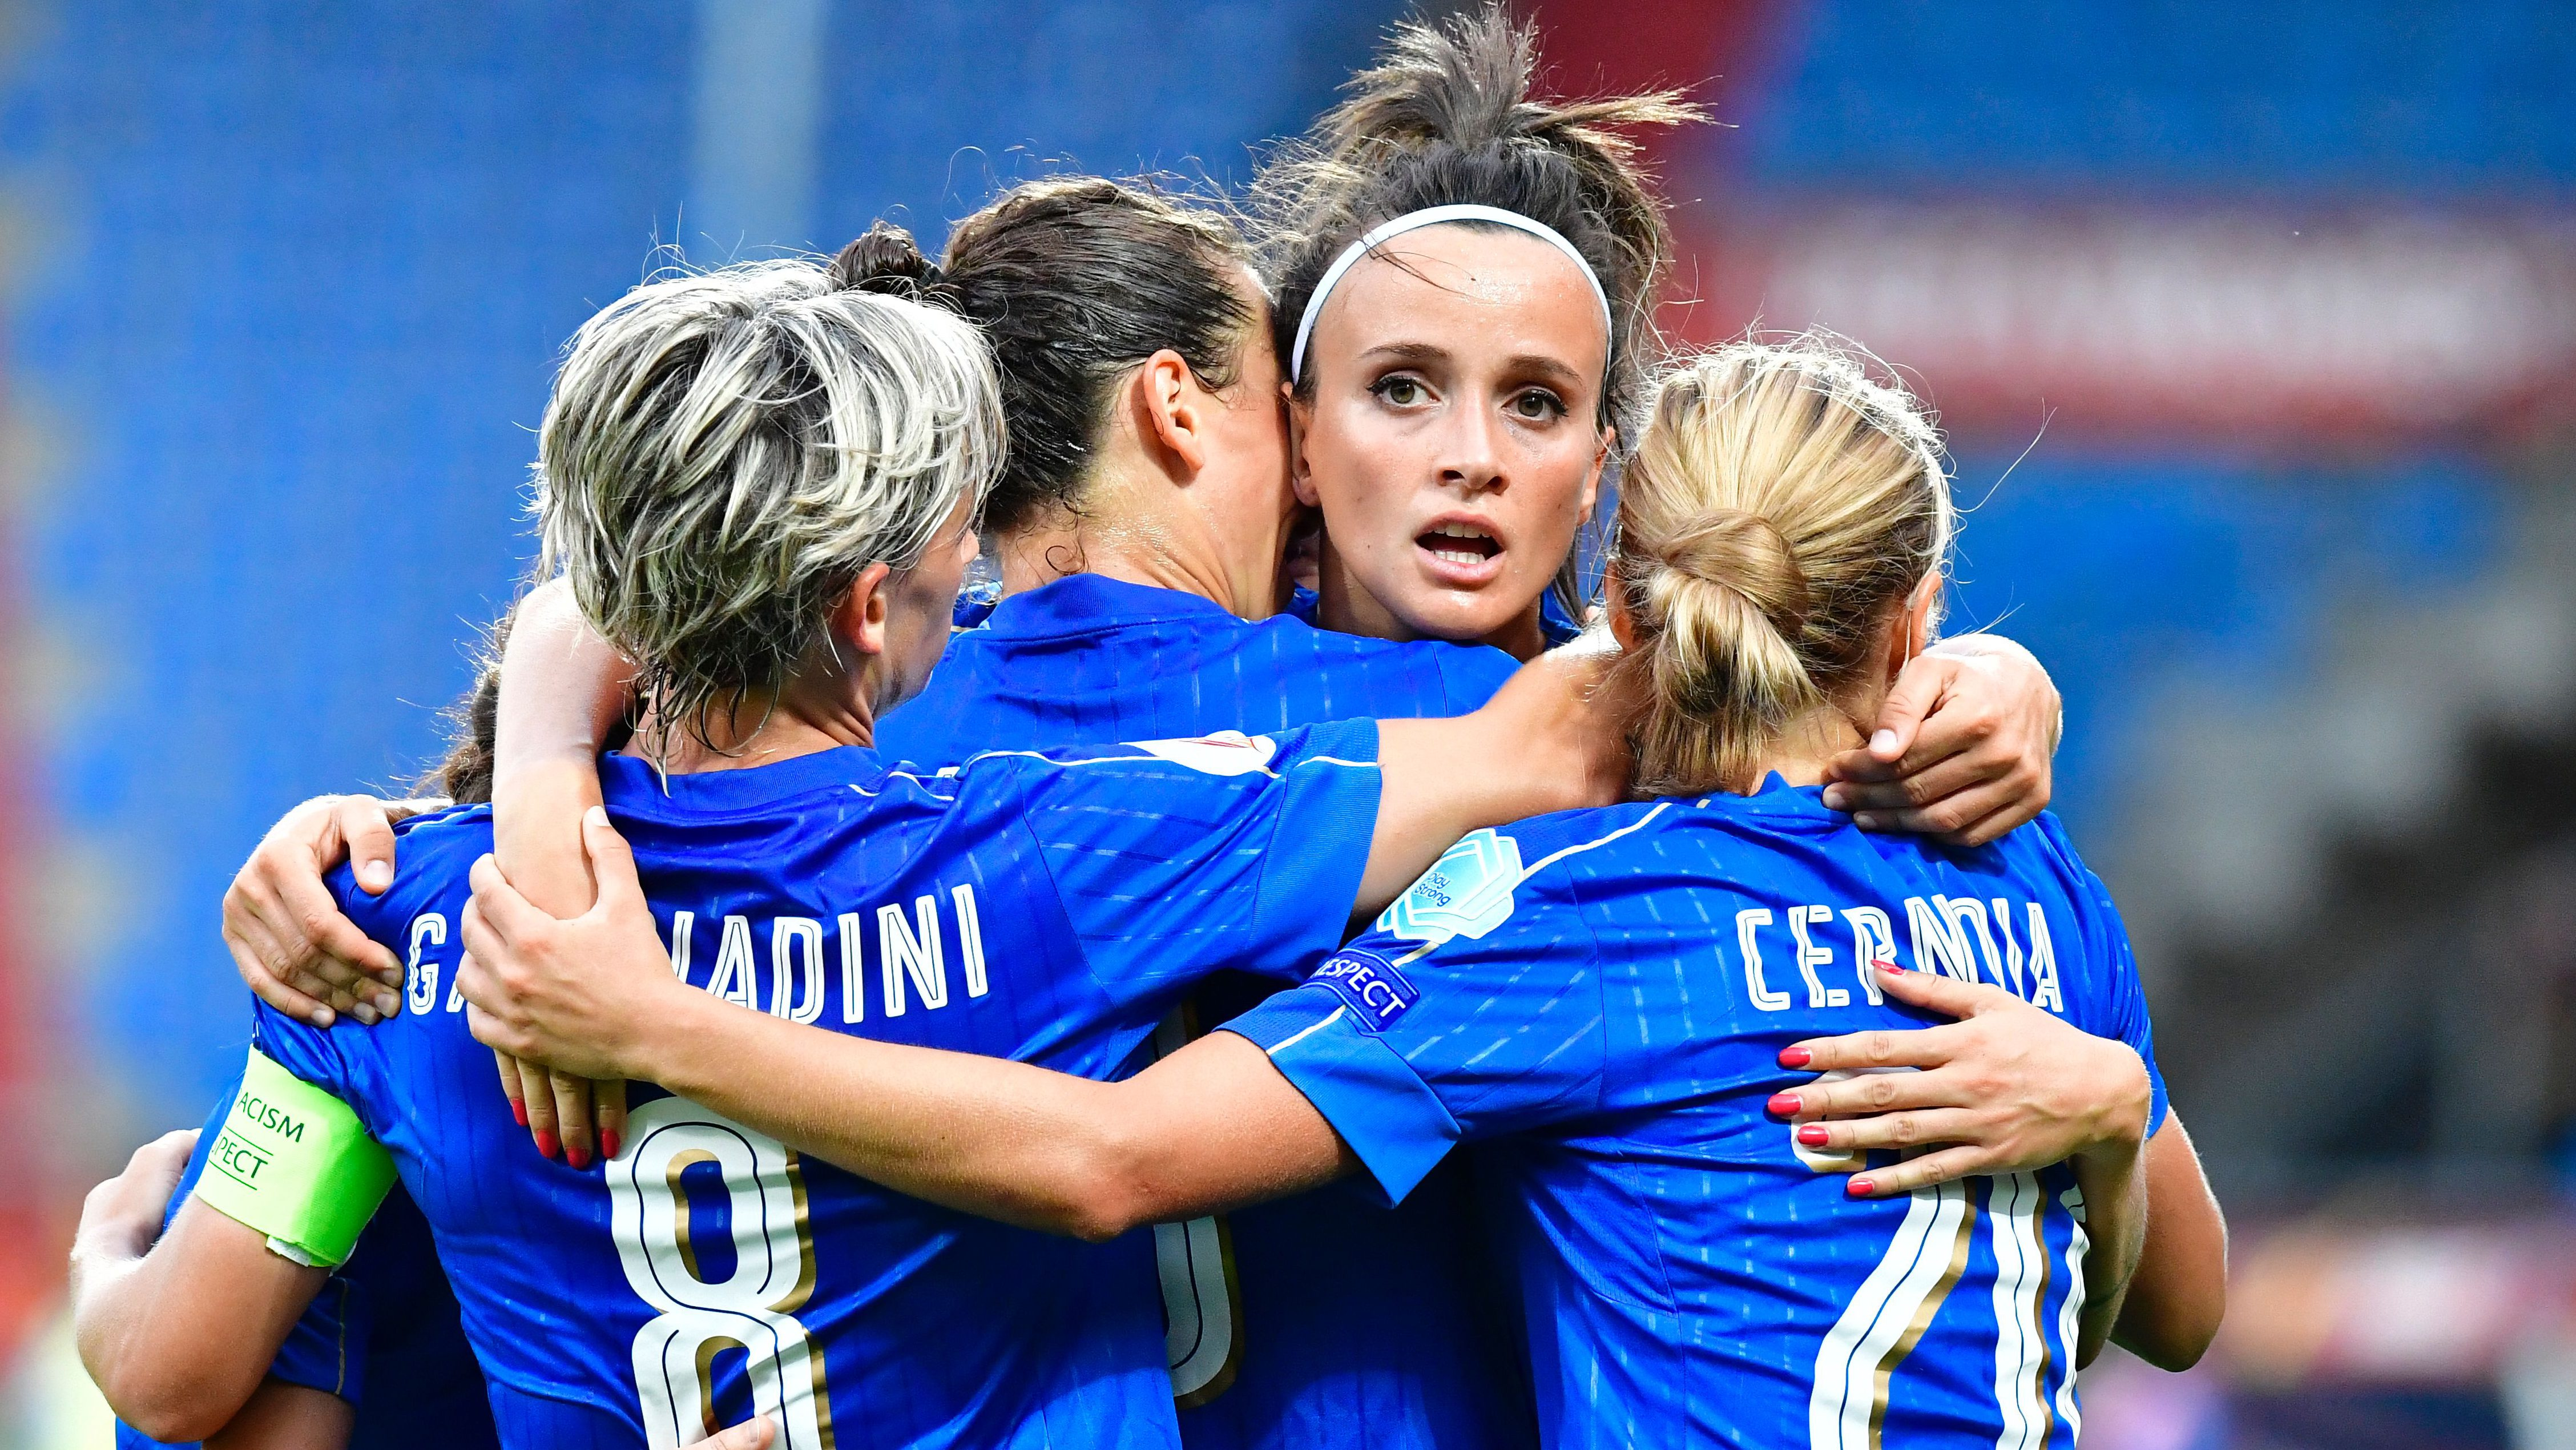 Italy's forward Ilaria Mauro celebrates after scoring a goal during the UEFA Women's Euro 2017 football tournament between Germany and Italy at Stadium Koning Willem II in Tilburg on July 21, 2017.  / AFP PHOTO / TOBIAS SCHWARZ        (Photo credit should read TOBIAS SCHWARZ/AFP/Getty Images)